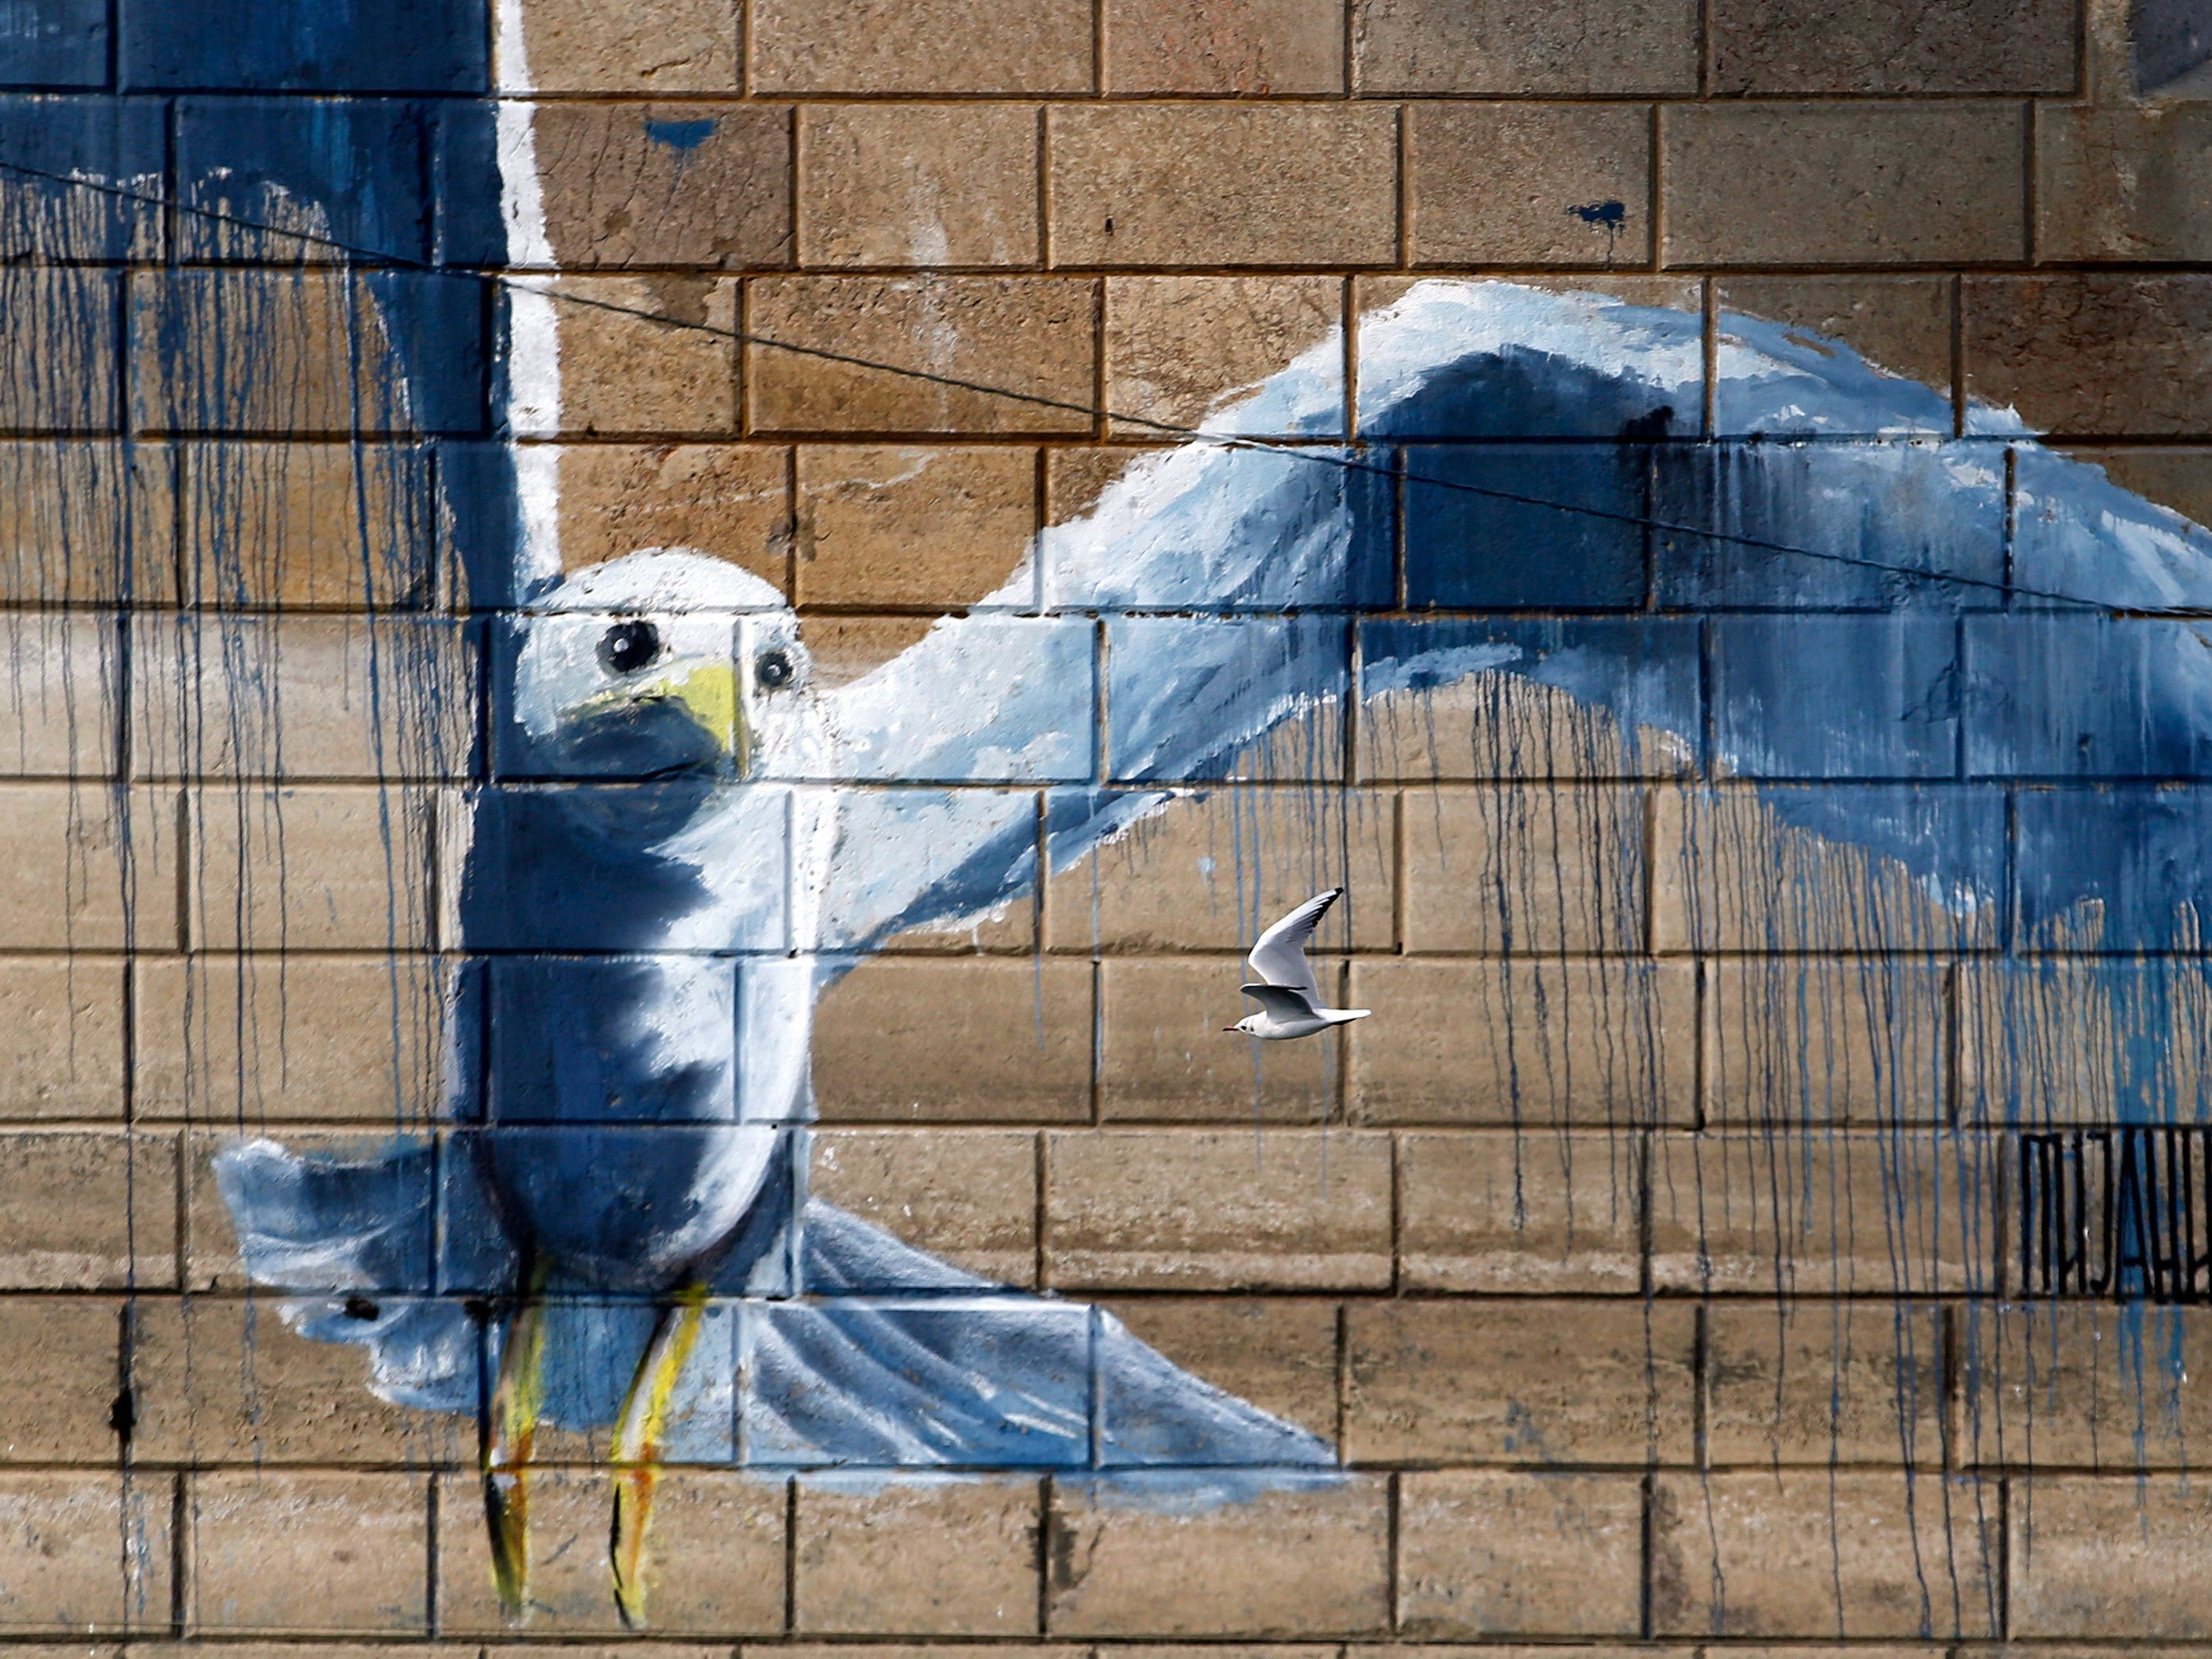 A river gull flies under the bridge by graffiti on the Sava river in Belgrade, Serbia, Tuesday, Oct. 23, 2018.